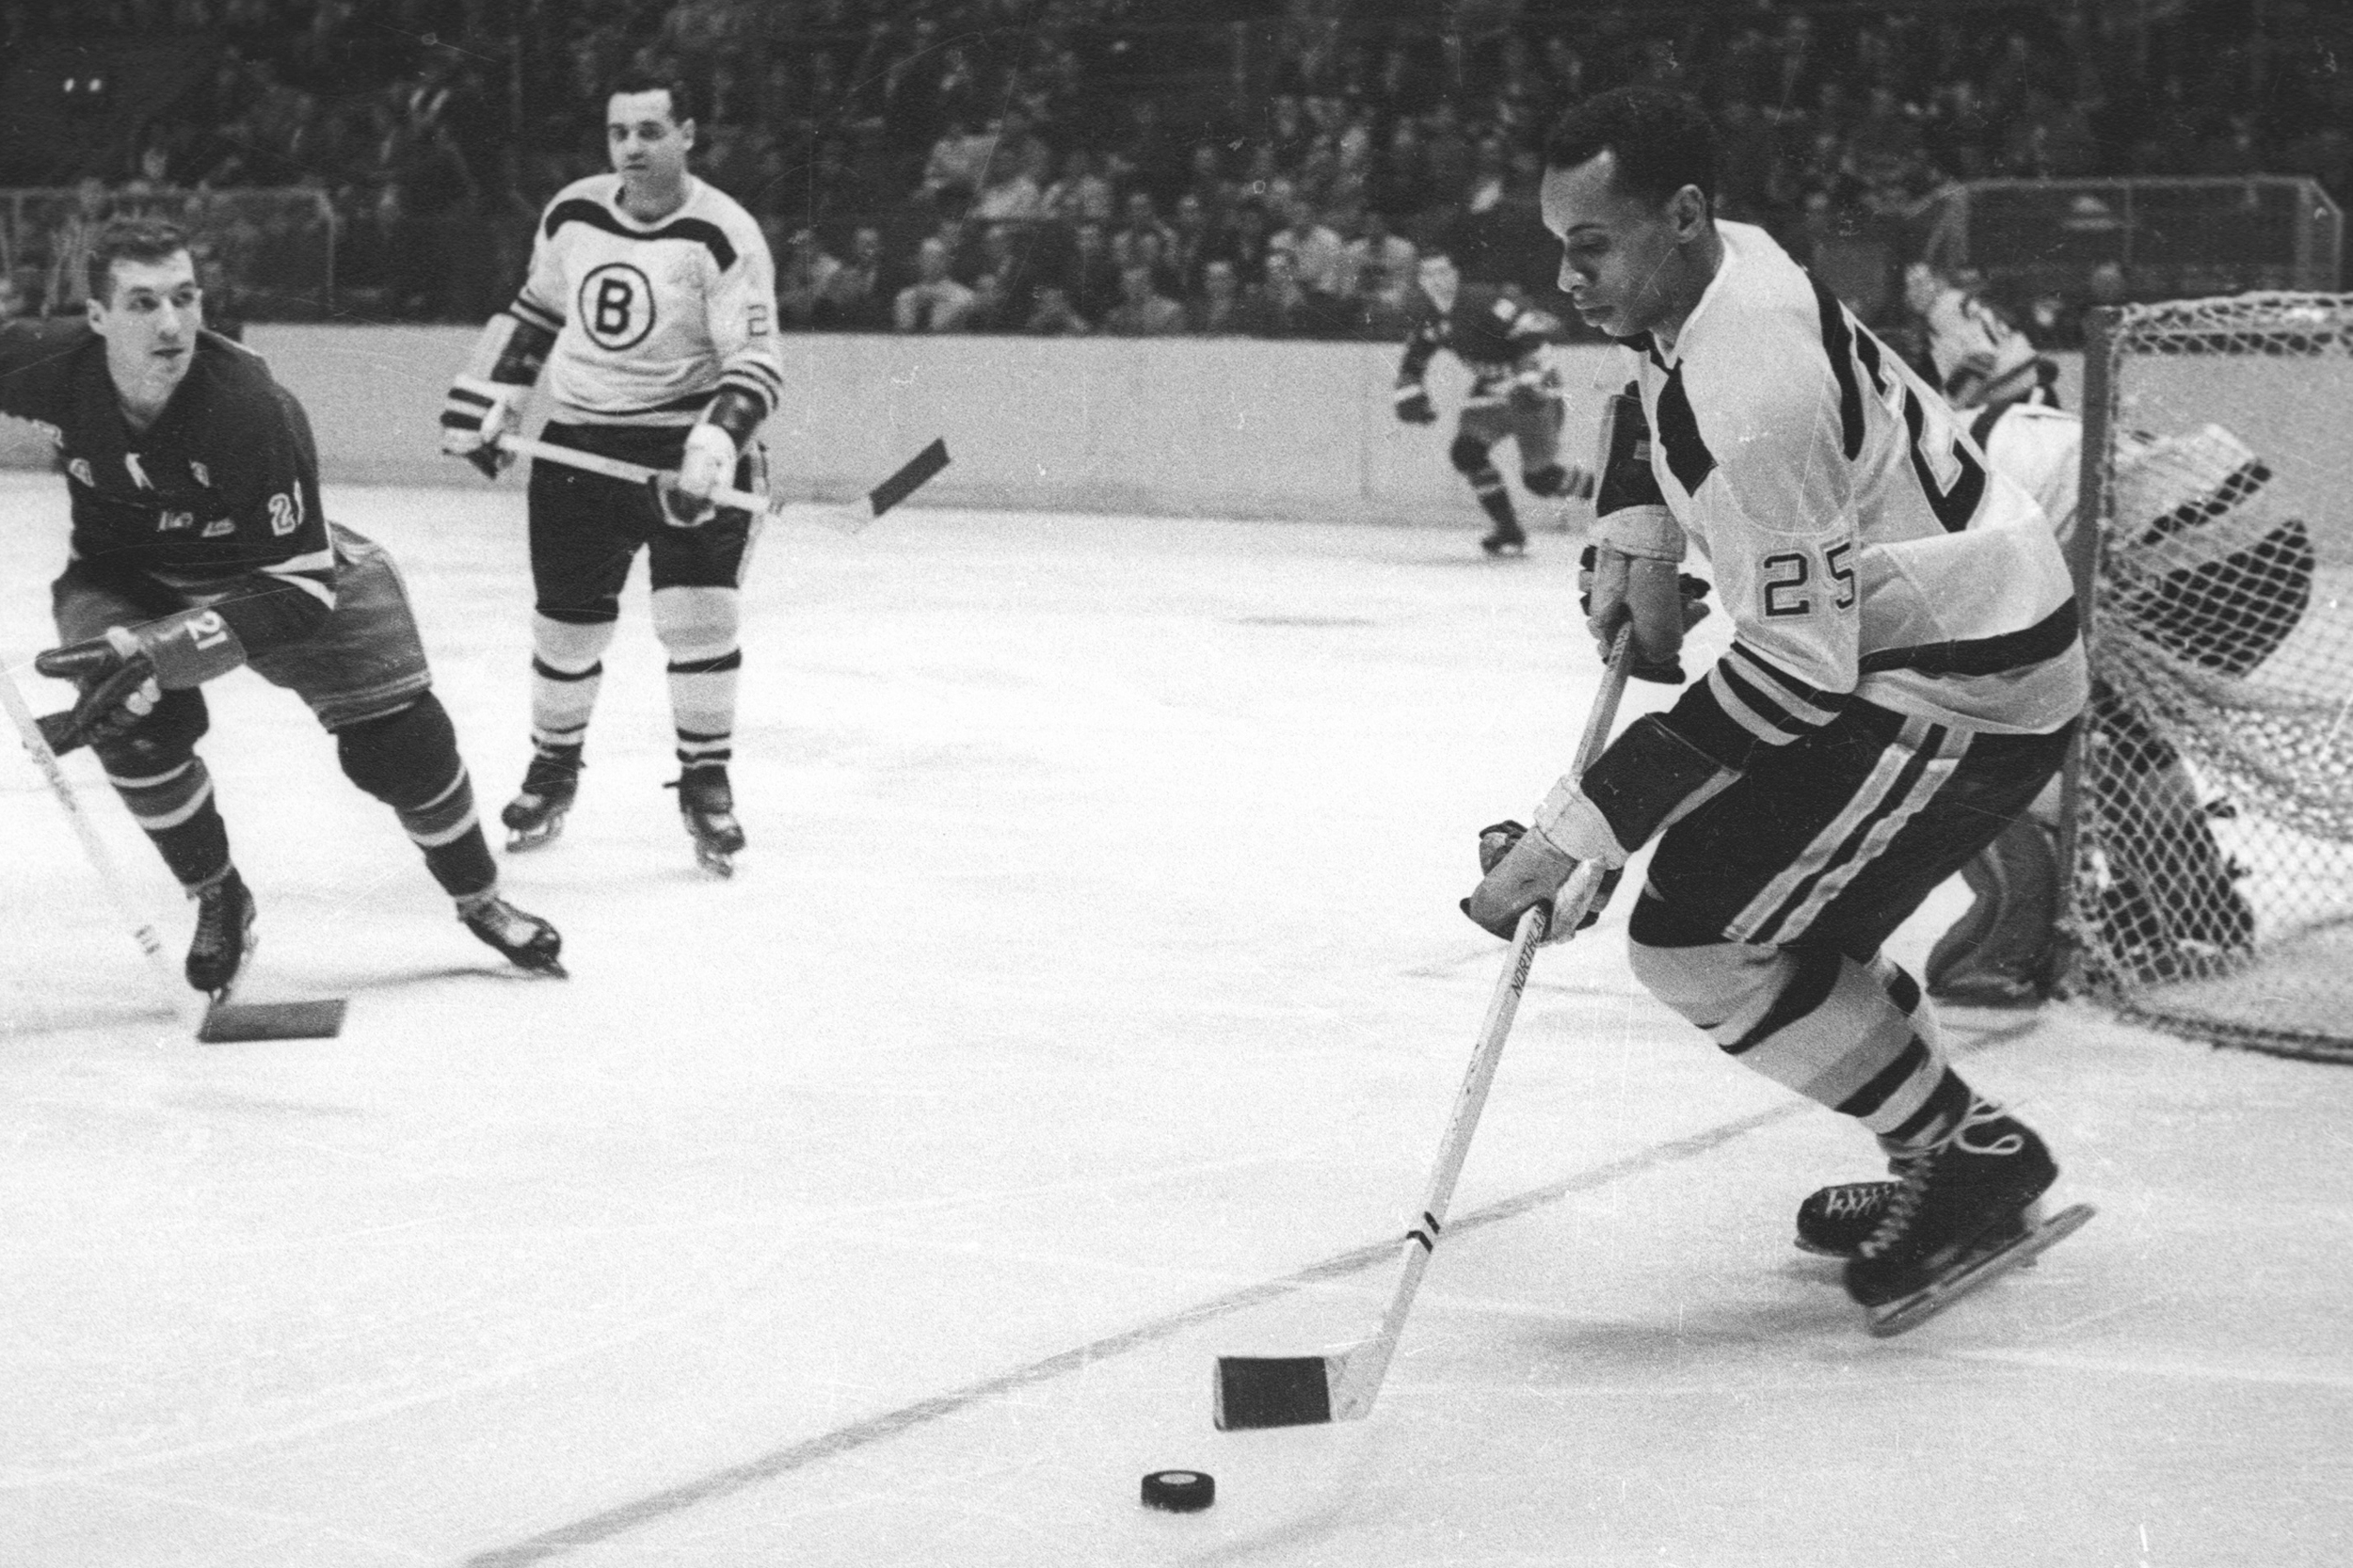 Willie O'Ree #25 of the Boston Bruins skates with the puck as Camille Henry #21 of the New York Rangers looks defend during their NHL game circa 1961 at the Madison Square Garden in New York, New York.